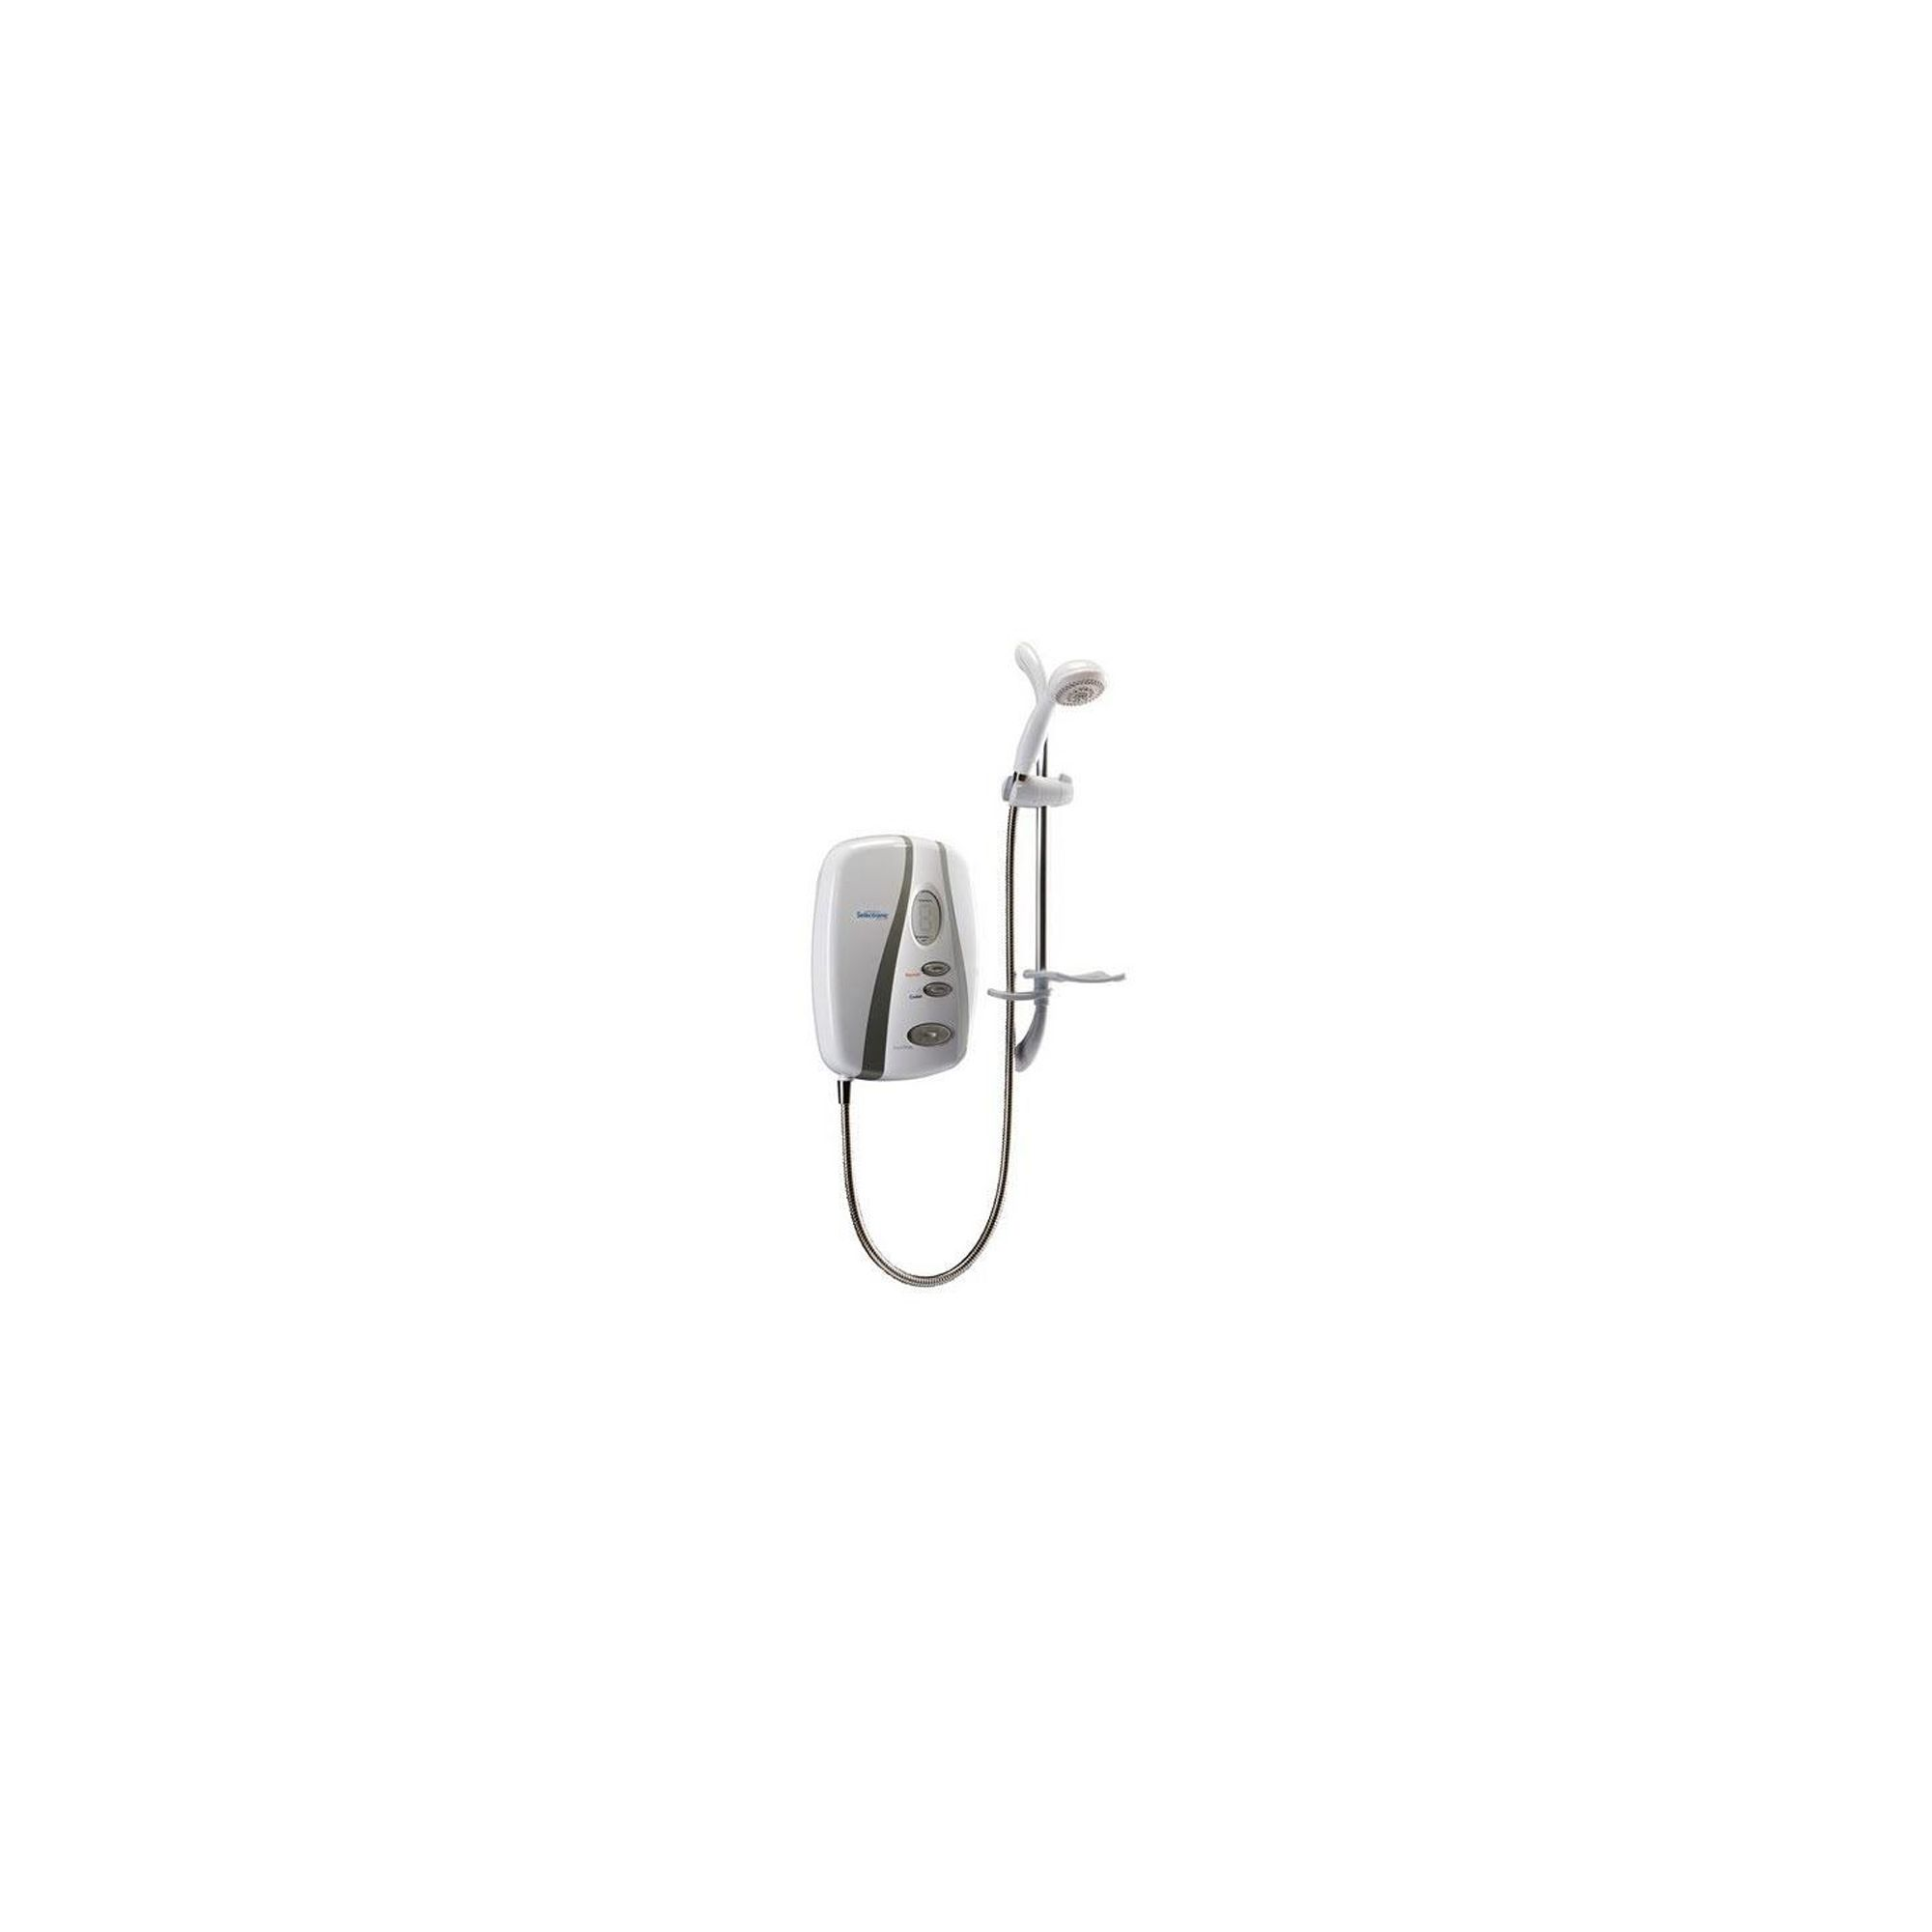 Redring Selectronic Premier Standard Electric Shower White/Chrome 10.8kW at Tescos Direct